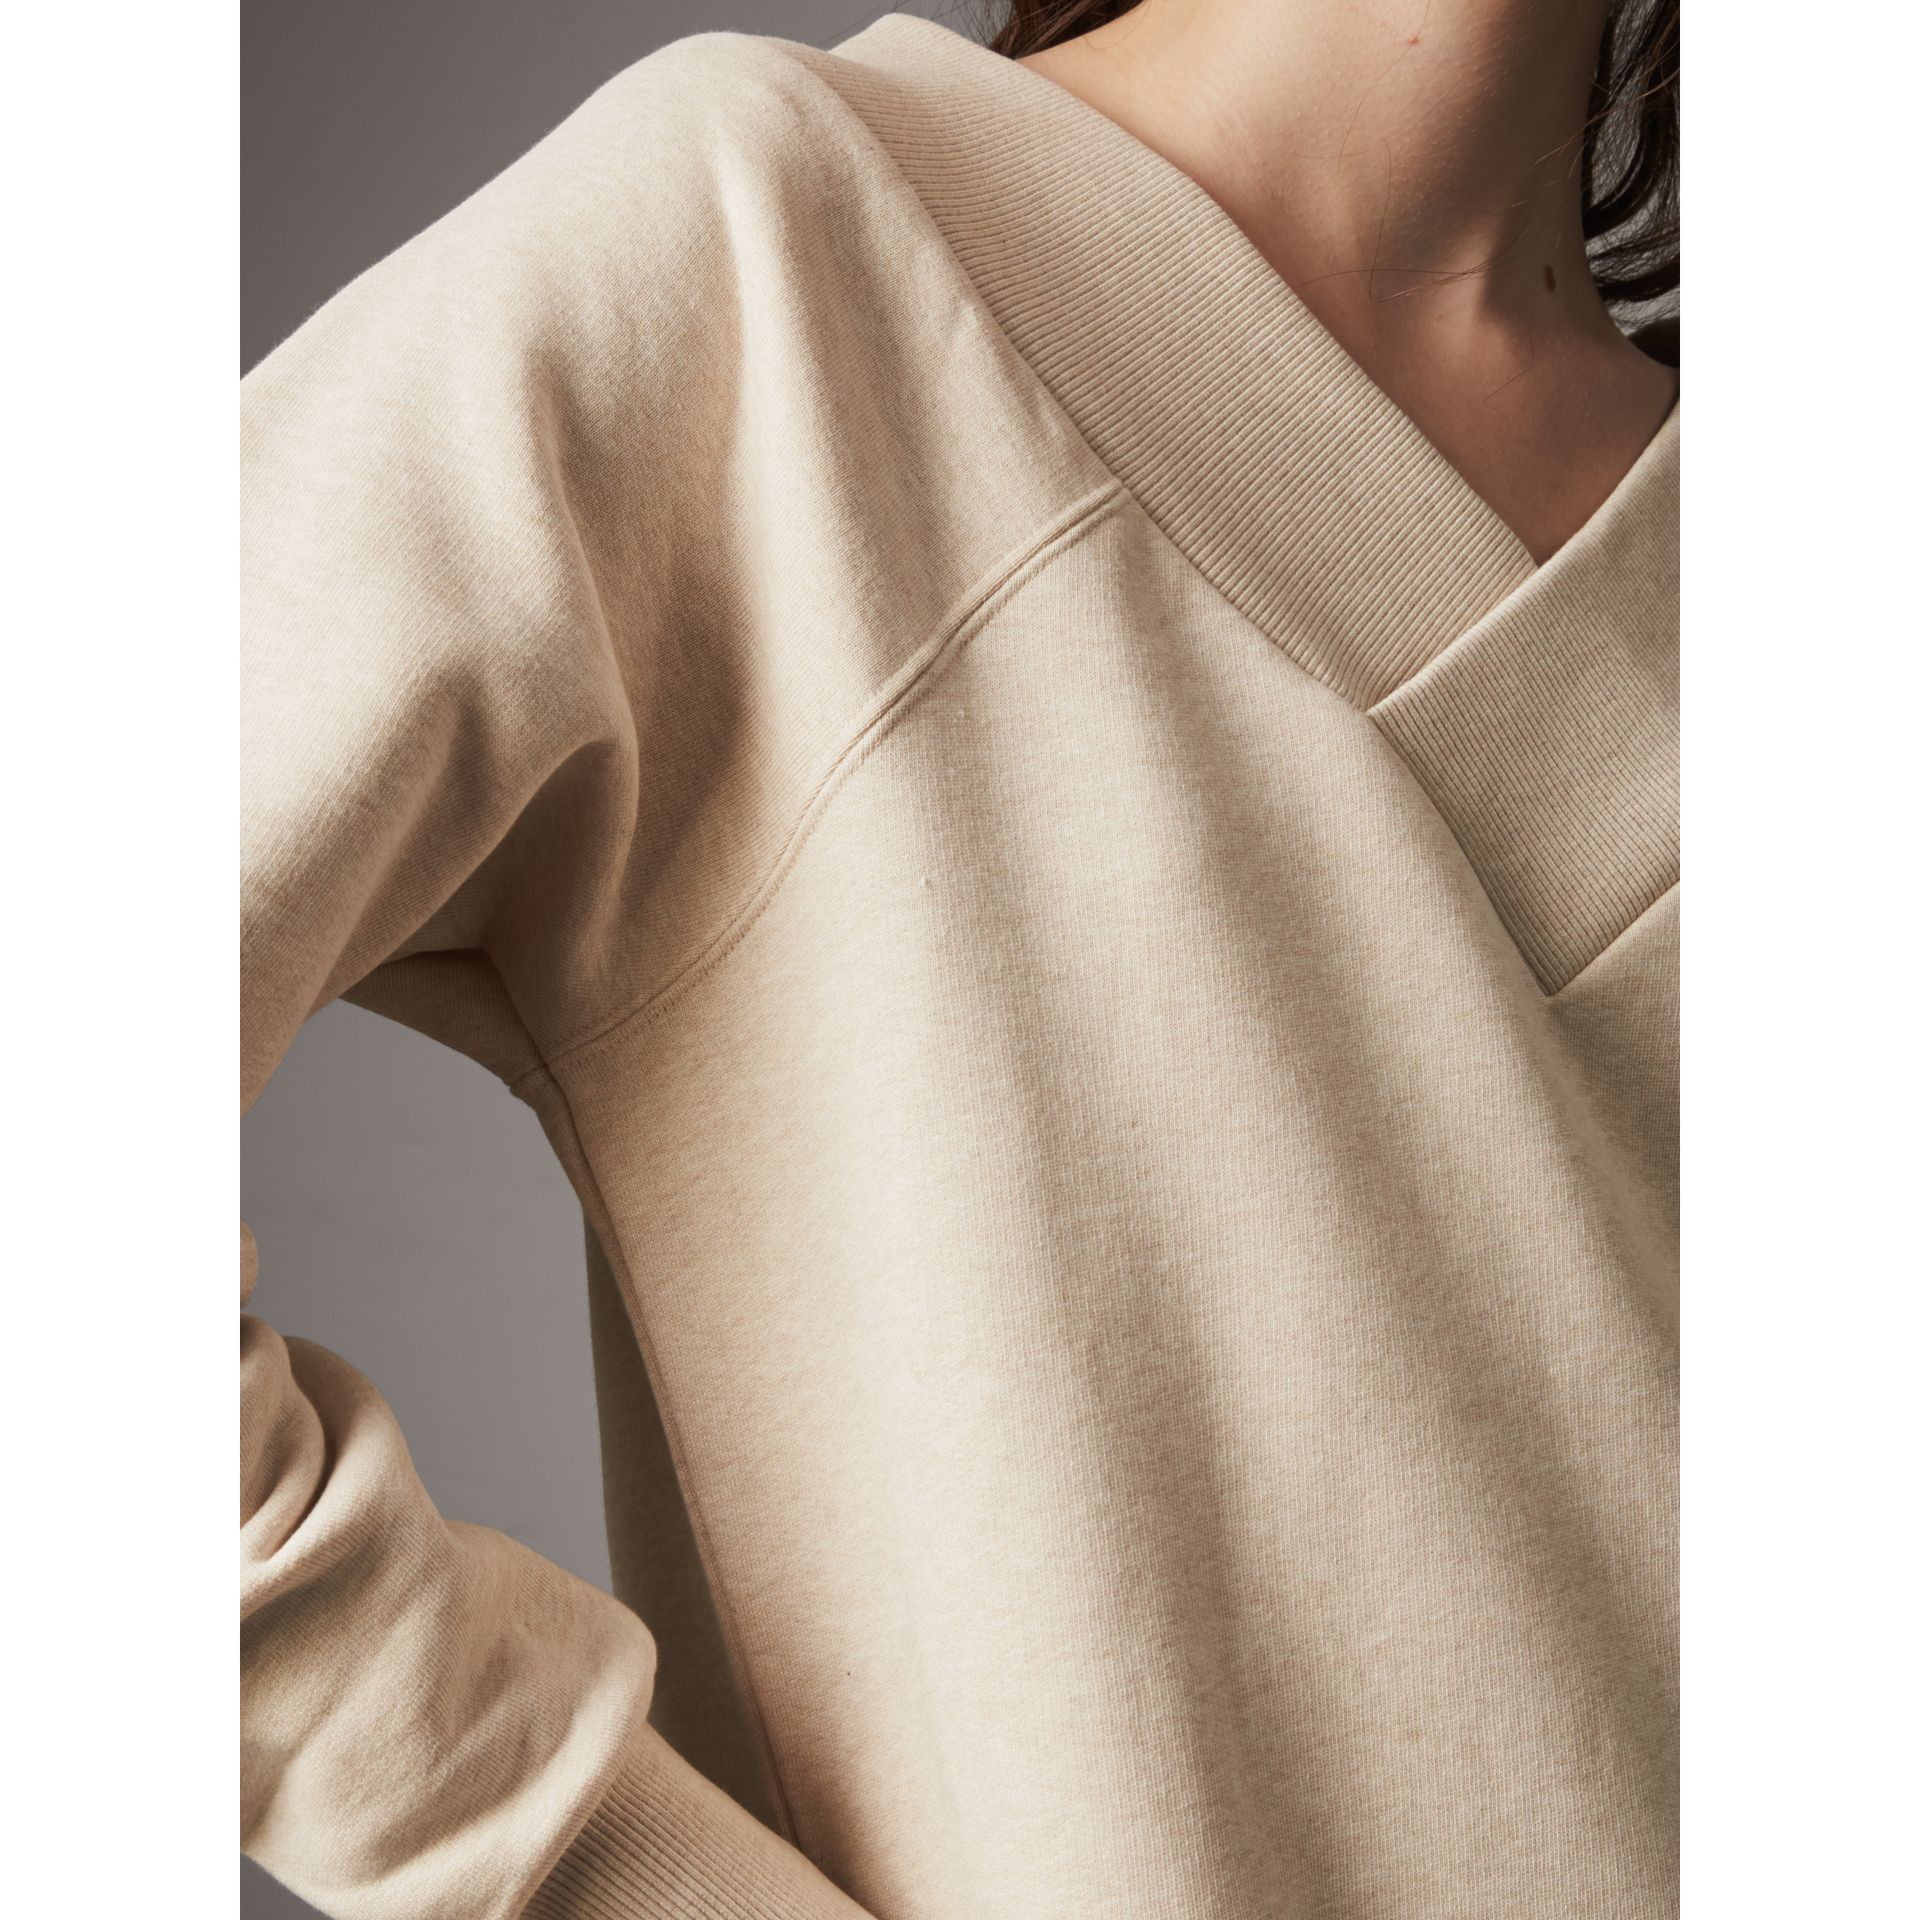 Cotton Blend V-neck Sweater Dress in Oatmeal Melange - Women | Burberry - gallery image 2